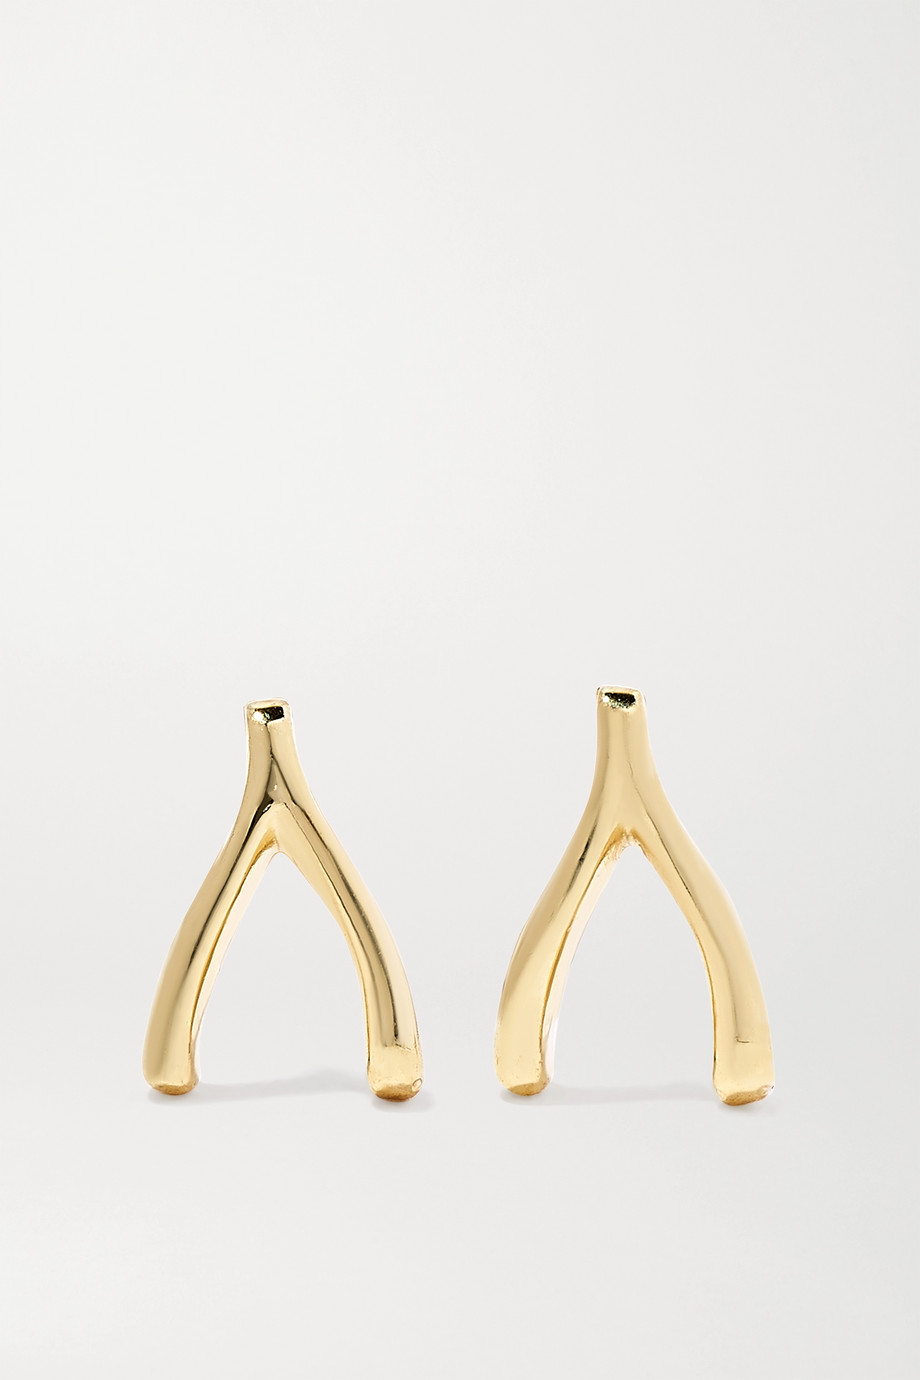 JENNIFER MEYER Mini Wishbone 18-karat gold earrings